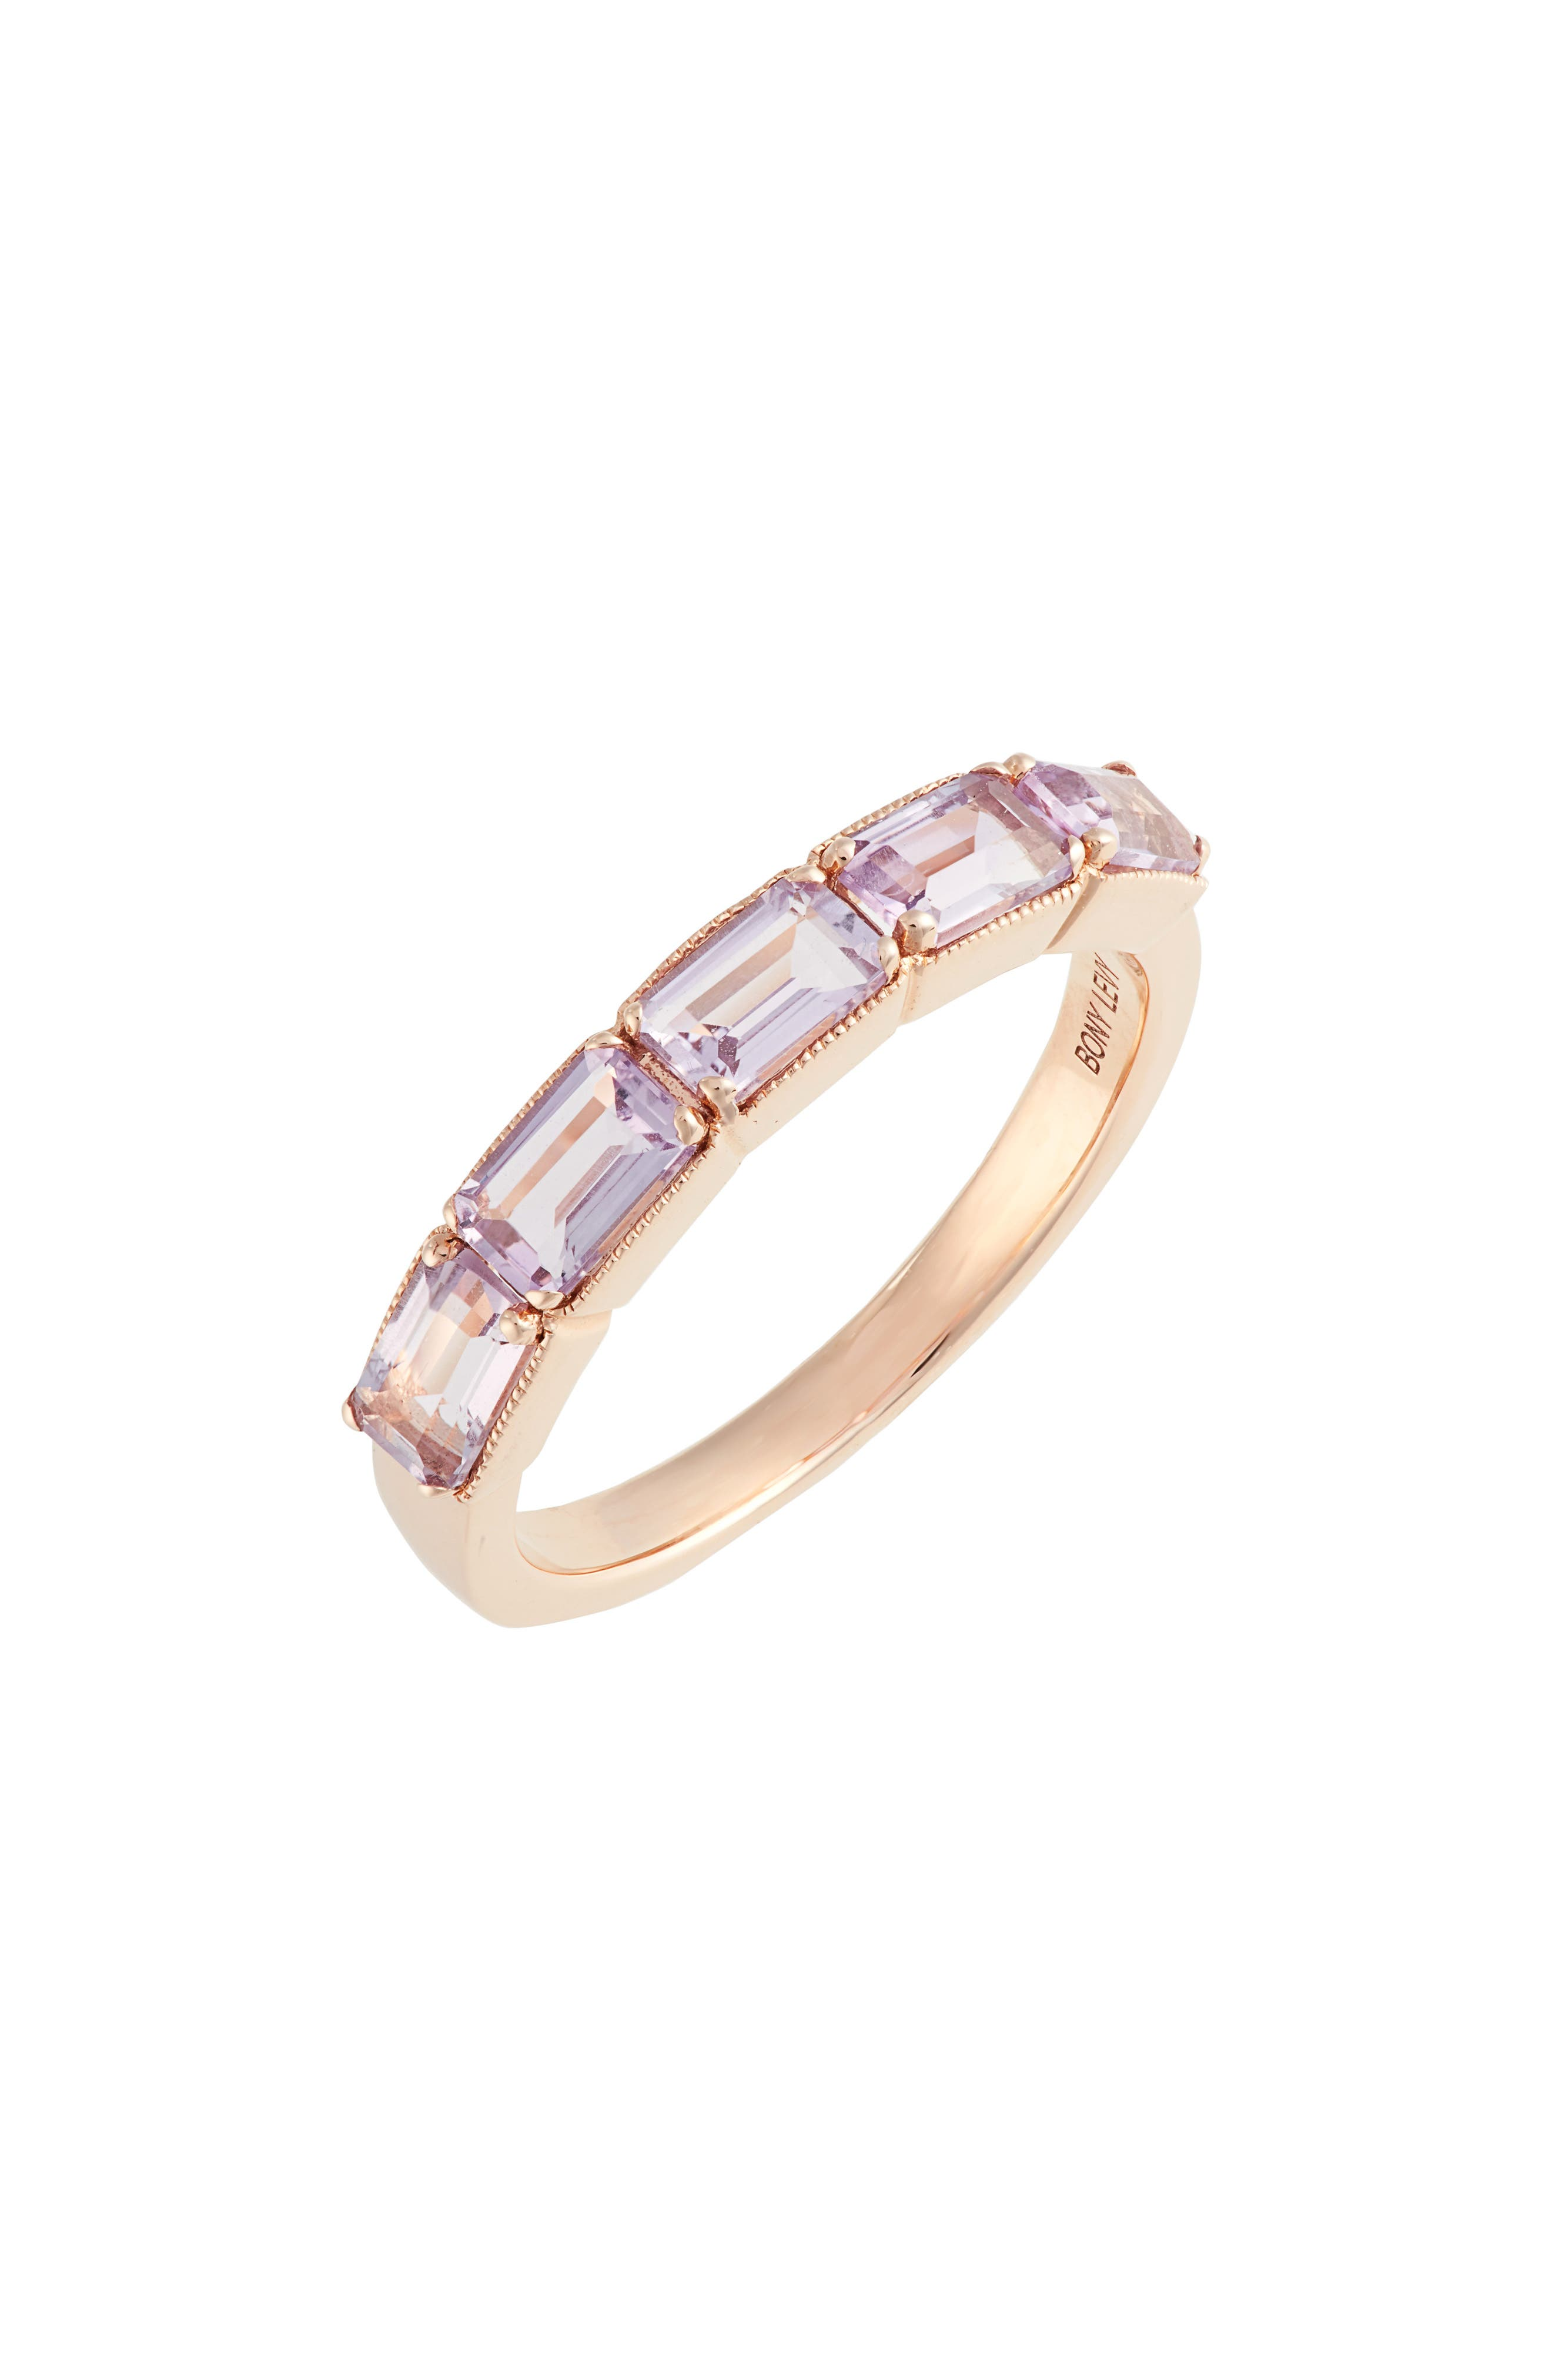 Purple Amethyst Baguette Stack Ring,                         Main,                         color, AMETHYST/ ROSE GOLD